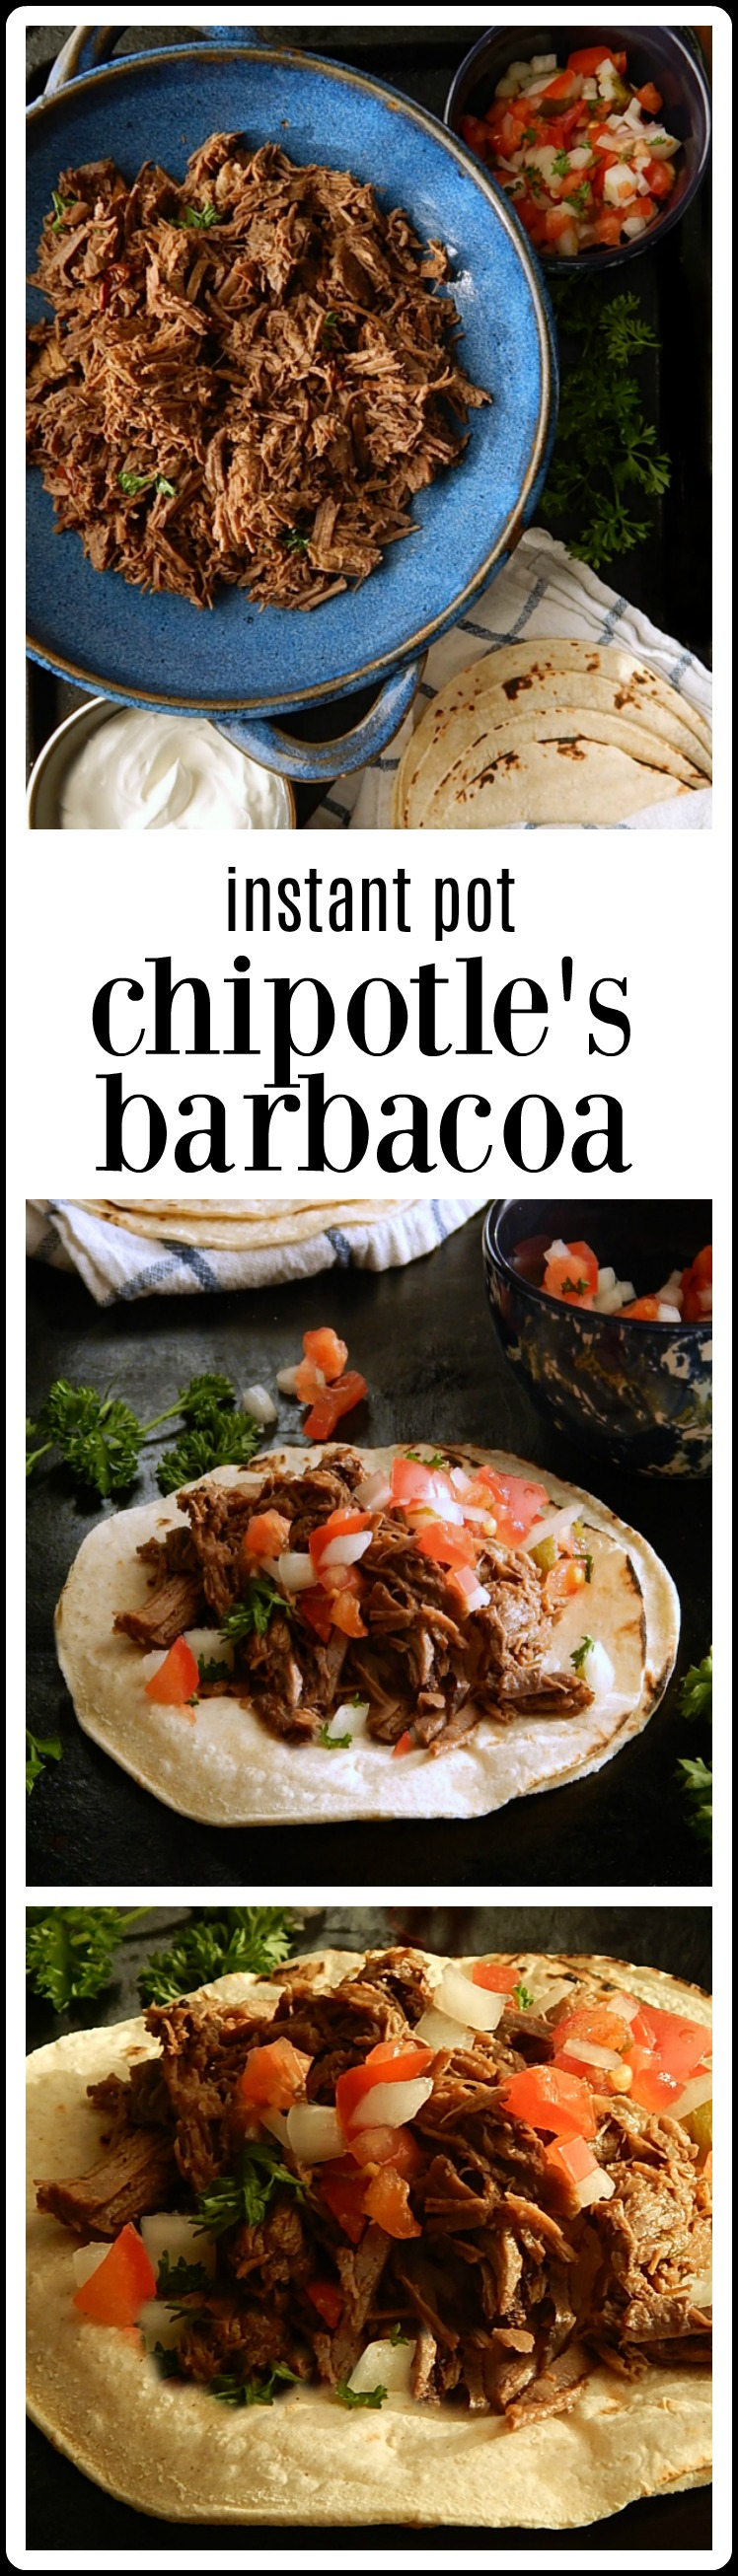 Instant Pot Chipotle Barbacoa Beef: You'll get that flavorful, peppery, chipotle deliciousness in no time at all for your burrito, bowl, enchiladas or whatever Mexican Barbacoa specialty your heart desires. Make it in your Slow Cooker too. #Instant Pot Barbacoa #Chipotles Instant Pot Barbacoa #Chipotles Slow Cooker Barbacoa